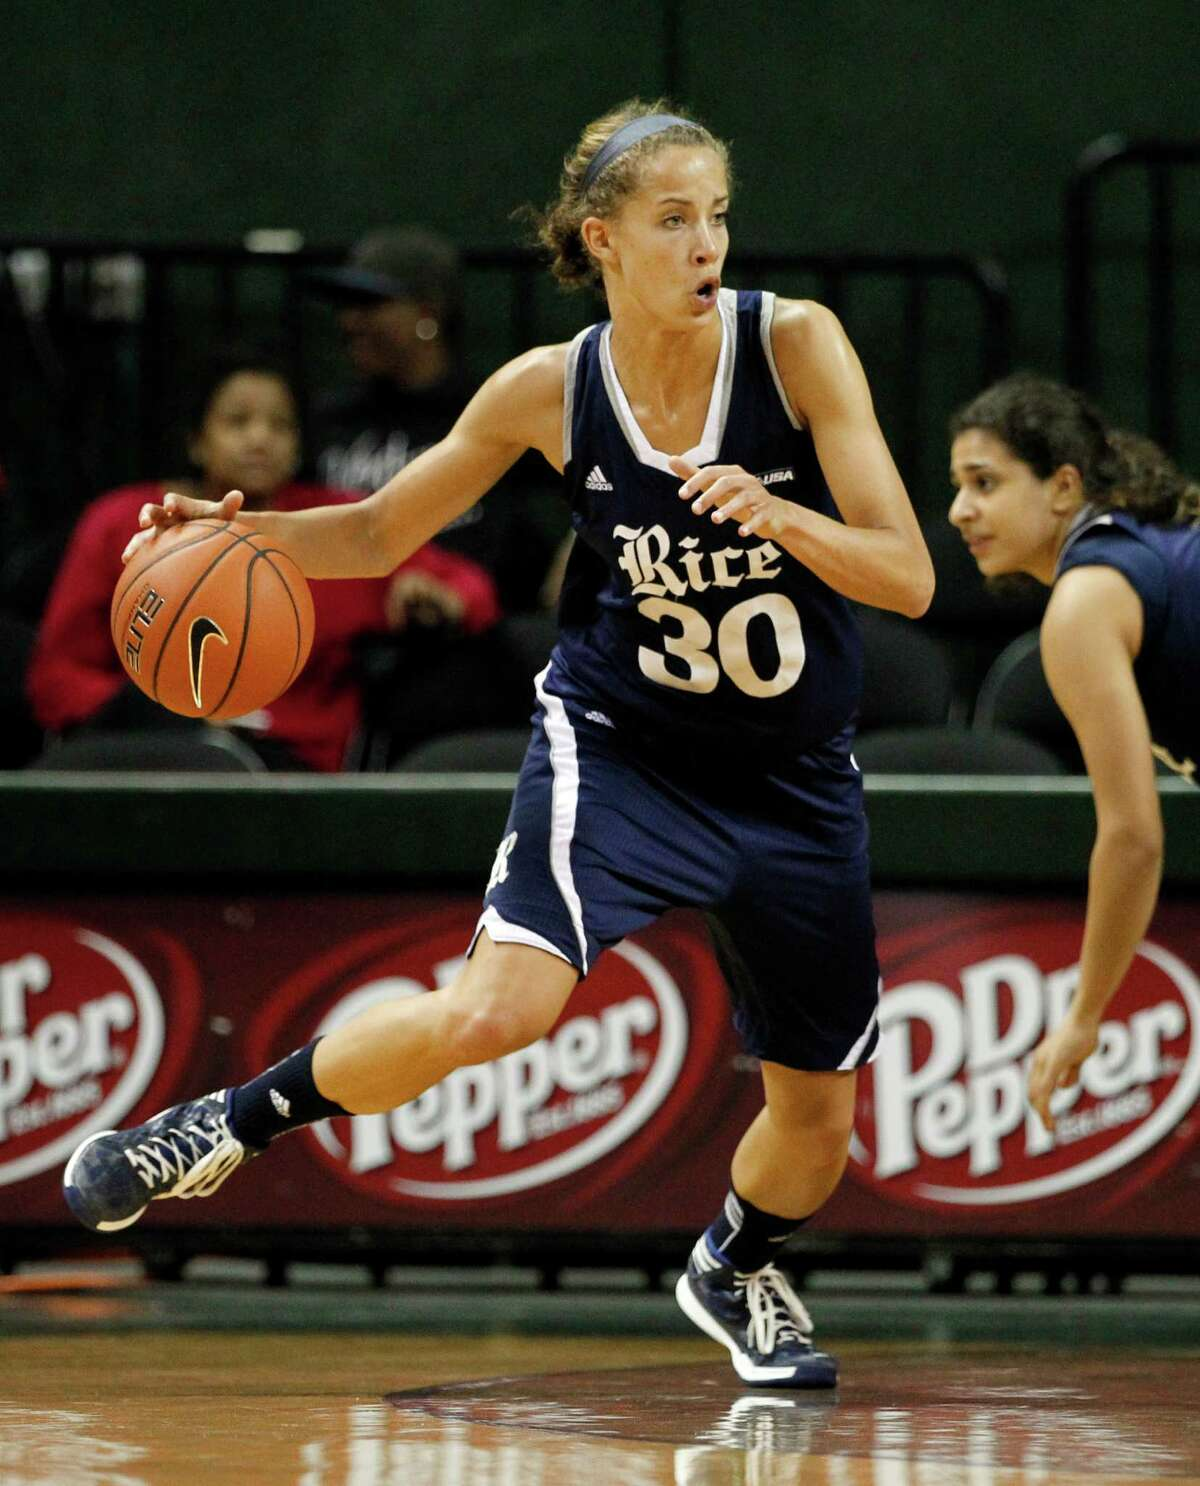 Rice forward Jessica Kuster (30) works the perimeter against Baylor during an NCAA college basketball game, Monday, Nov. 18, 2013, in Waco, Texas. Baylor won 79-46. (AP Photo/Tony Gutierrez)